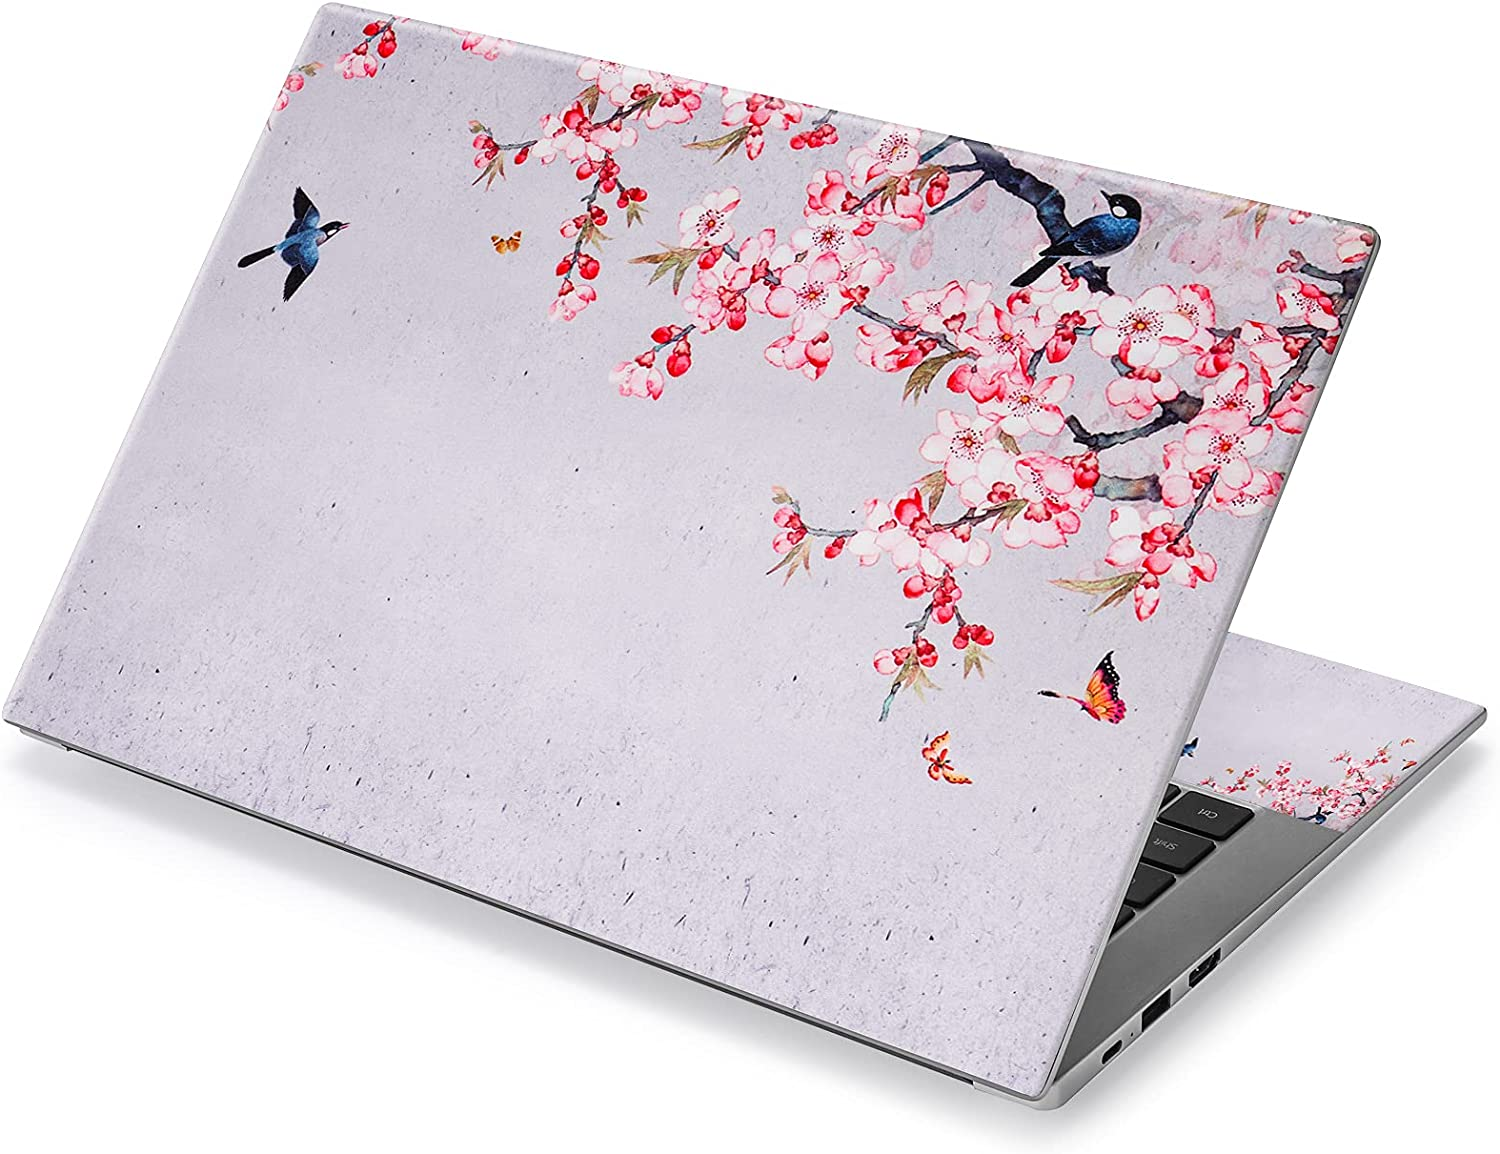 12.1 13 13.3 14 15.4 15.6 Inches Laptop Skin Sticker Decal Universal Netbook Skin Sticker Reusable Notebook Art Decal Protector Cover Decal by AORTDES (Birds Butterfly & Pink Flowers)